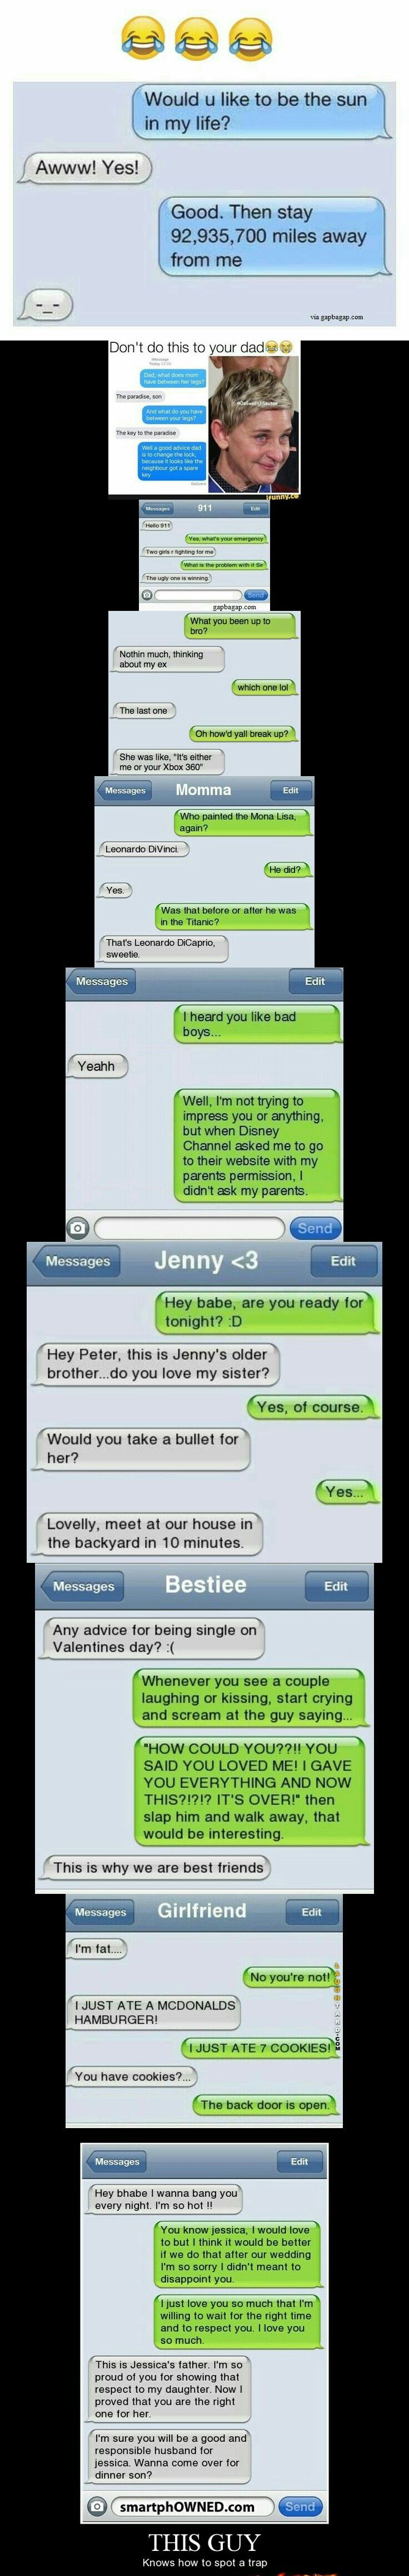 Top 10 Hilarious Text Messages ft  Exes | Funny pictures